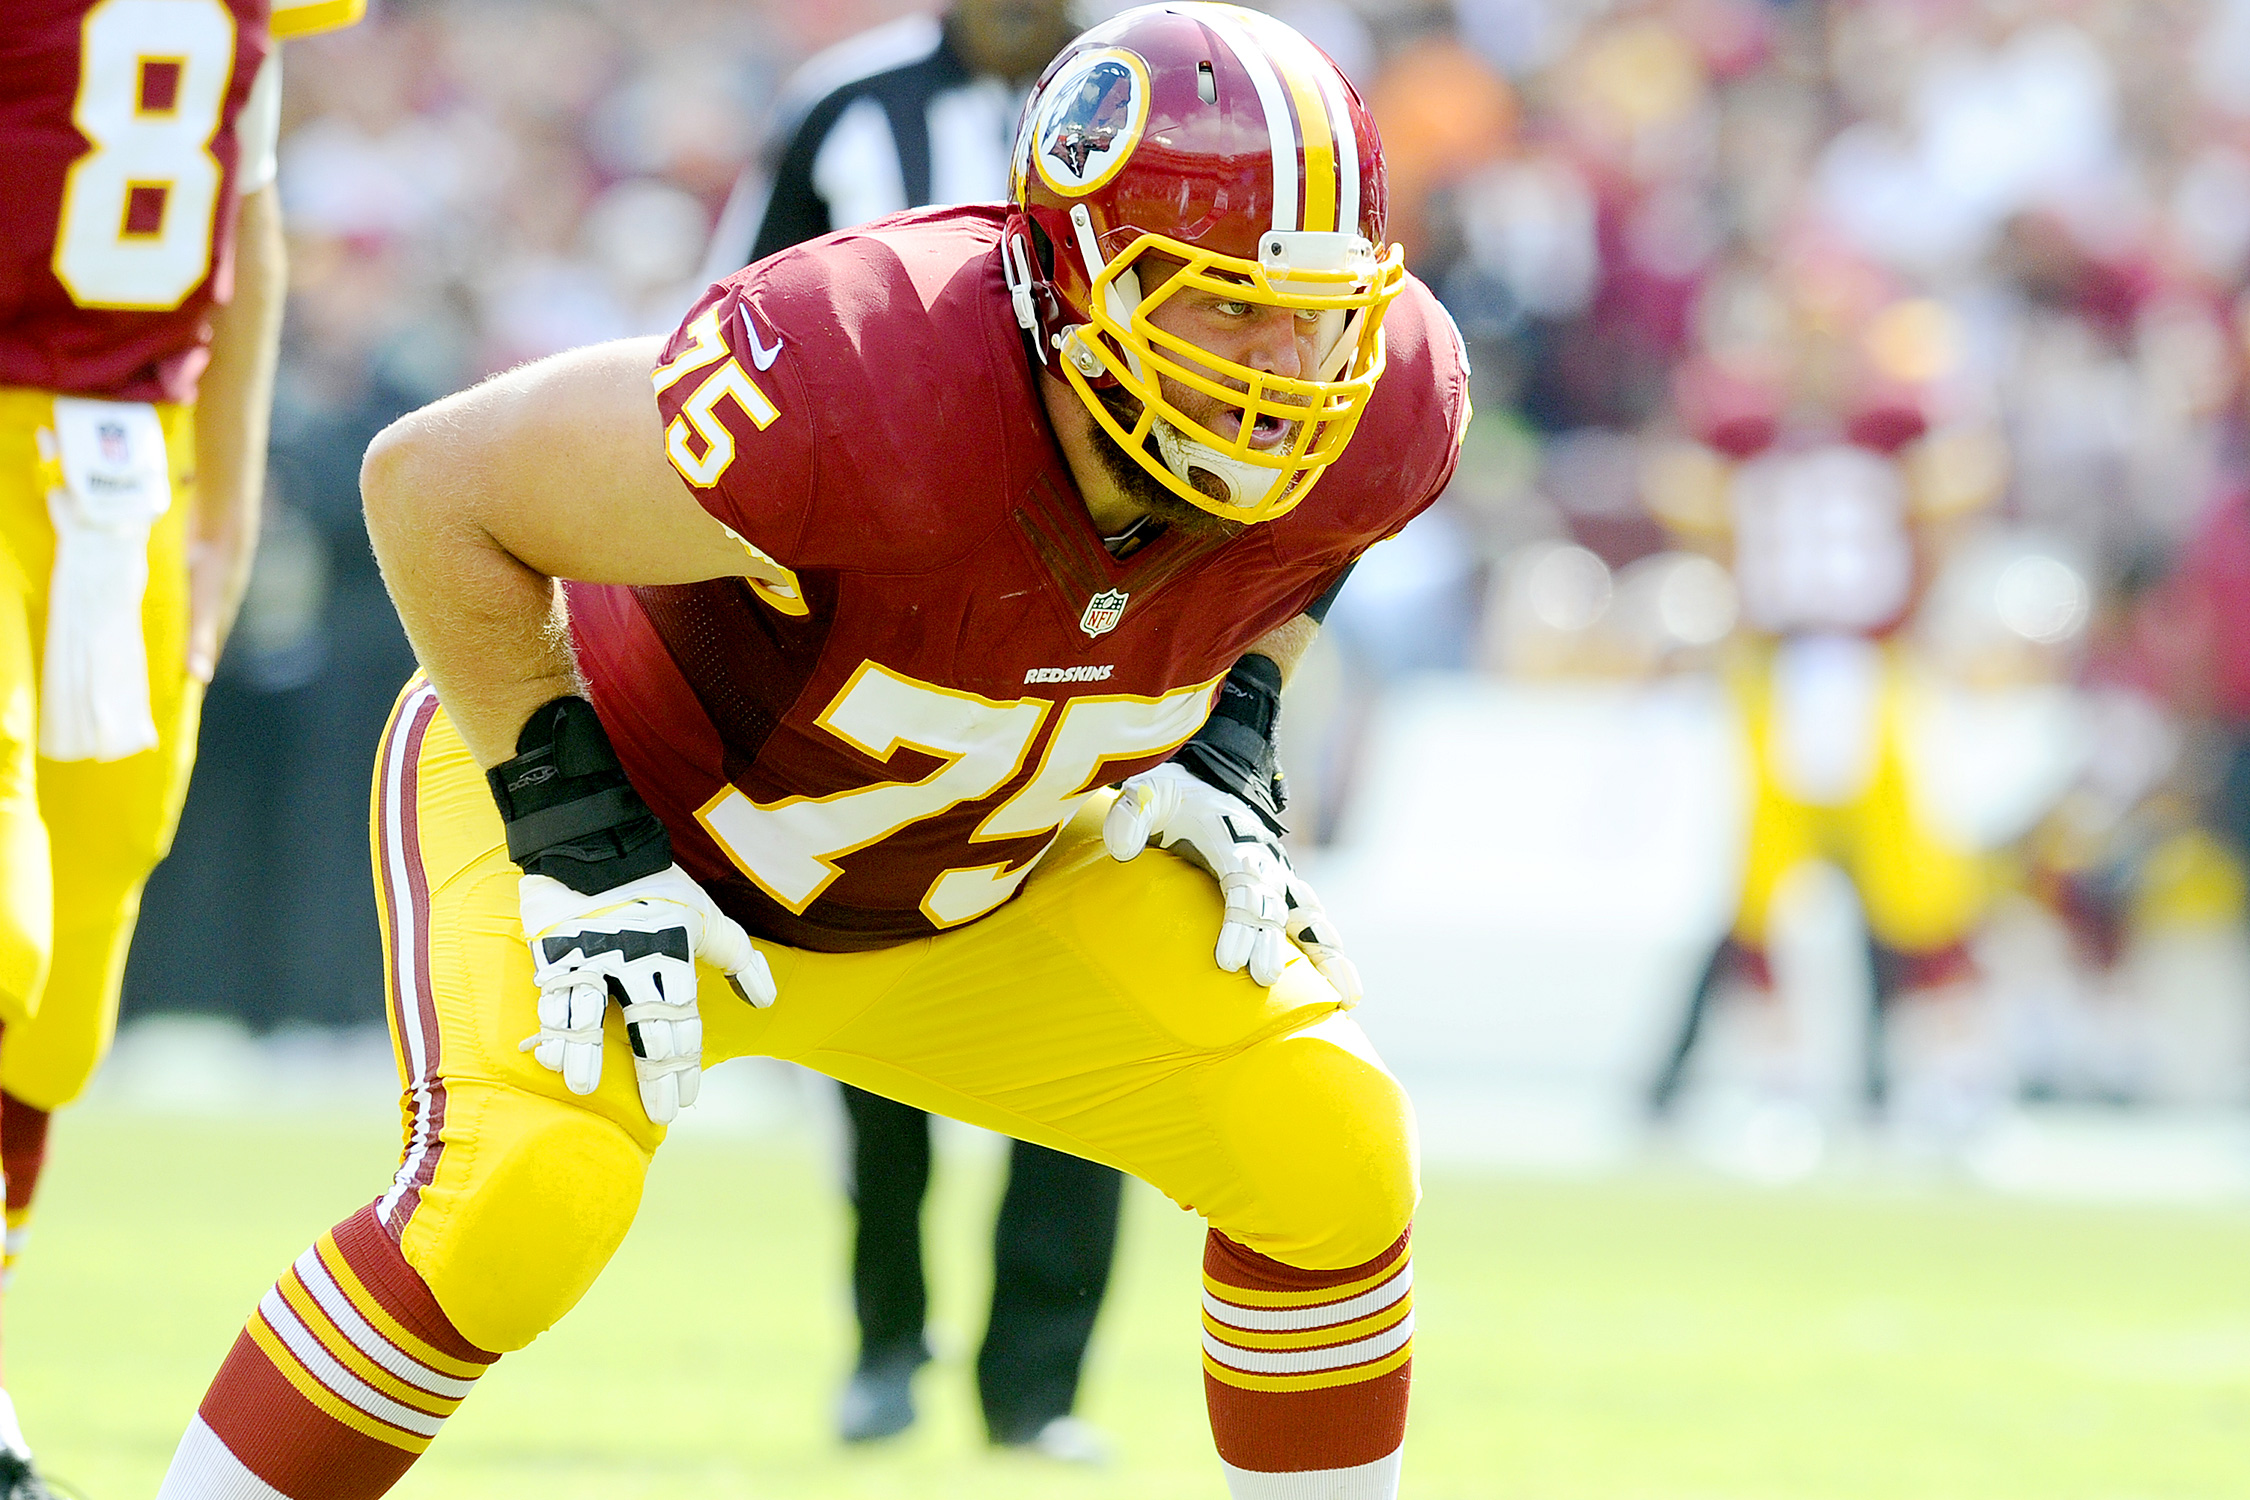 The Redskins took Scherff with the No. 5 pick in the 2015 draft, and that decision is paying off handsomely for them this year. After moving from tackle to guard as a rookie, Scherff has become a dominant presence on Washington line. Just as fellow SI All-Pro guard Zack Martin did in Week 8, Scherff made Fletcher Cox invisible in a Week 6 win over the Eagles, and PFF ranked him as the best right guard in Week 3's win over the Giants.